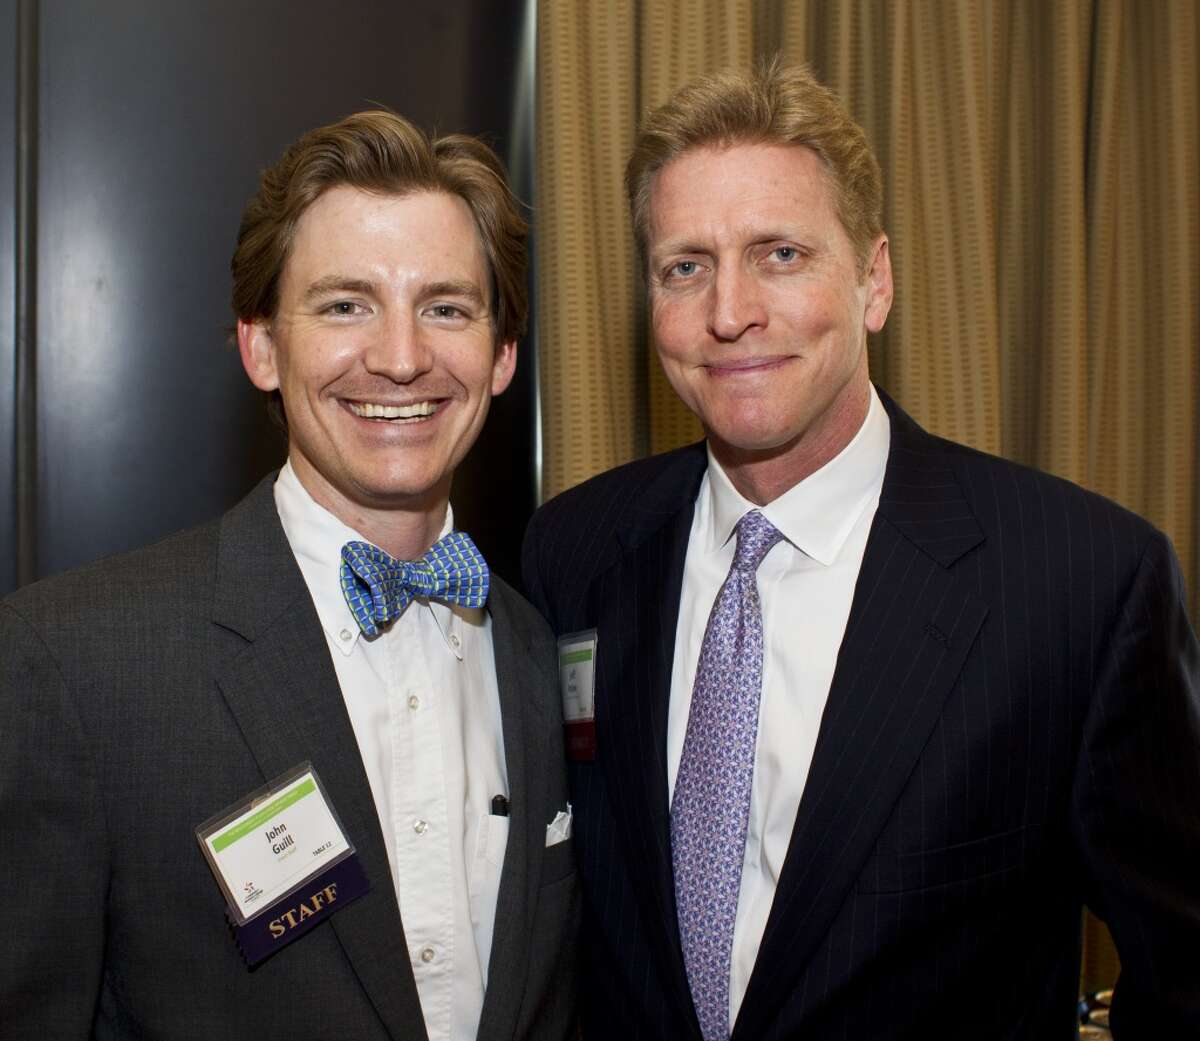 John Guill, left, and Jeff Paine attend a reception before The Council on Alcohol and Drugs Houston's 30th Annual Spring Luncheon, Thursday, April 25, 2013, in Houston. ( Nick de la Torre / Chronicle )